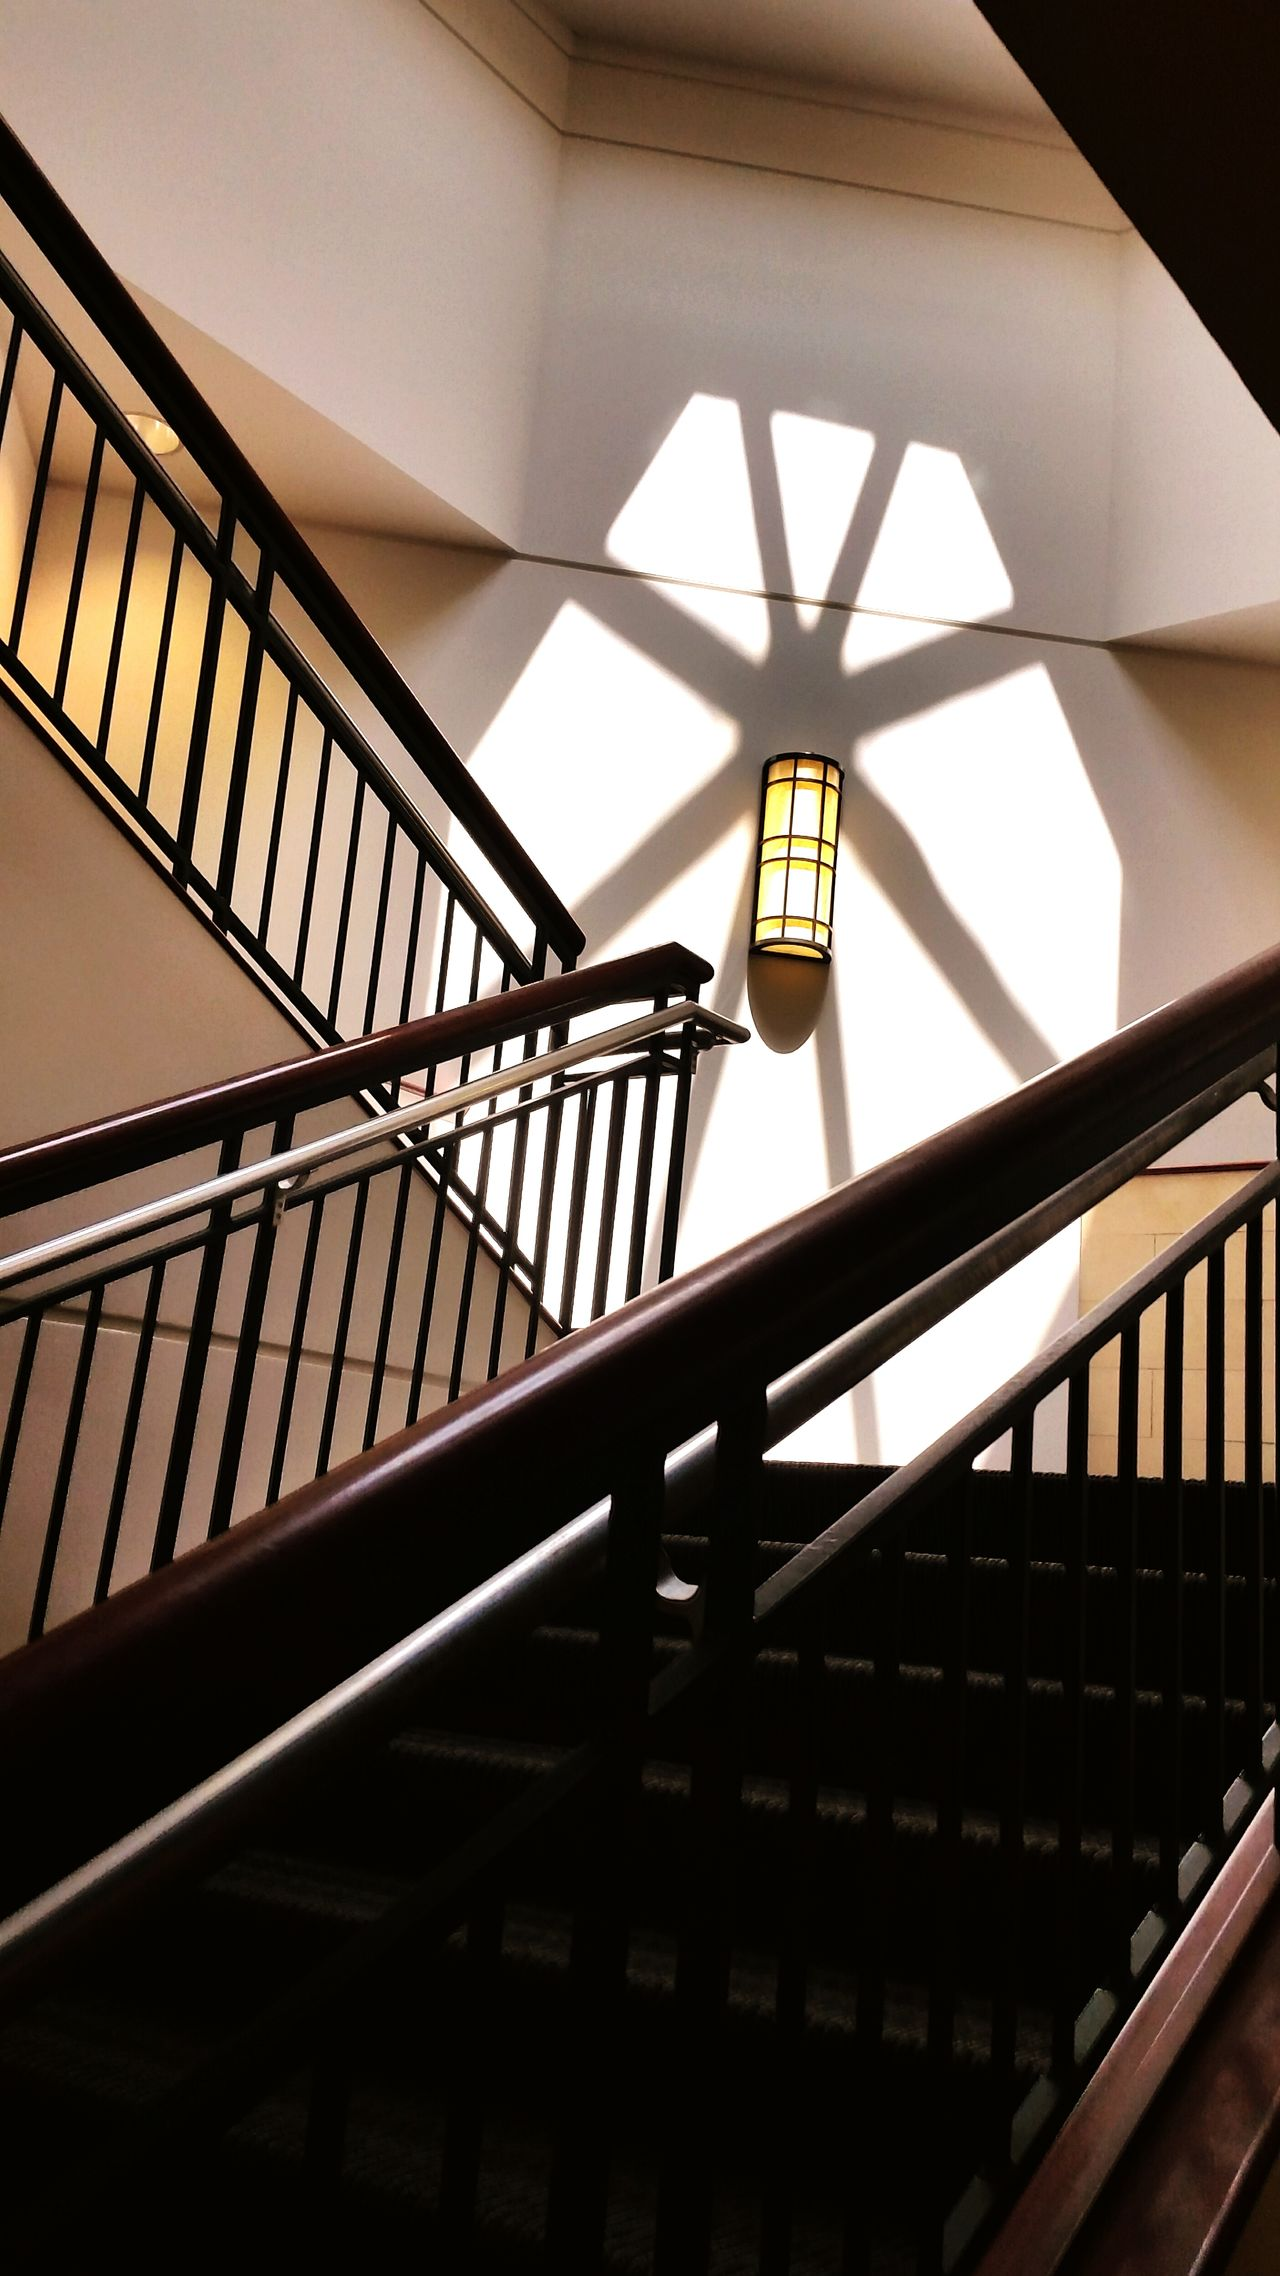 Railing Staircase Steps And Staircases Steps Architecture Built Structure Low Angle View Indoors  Day No People Spiral Staircase